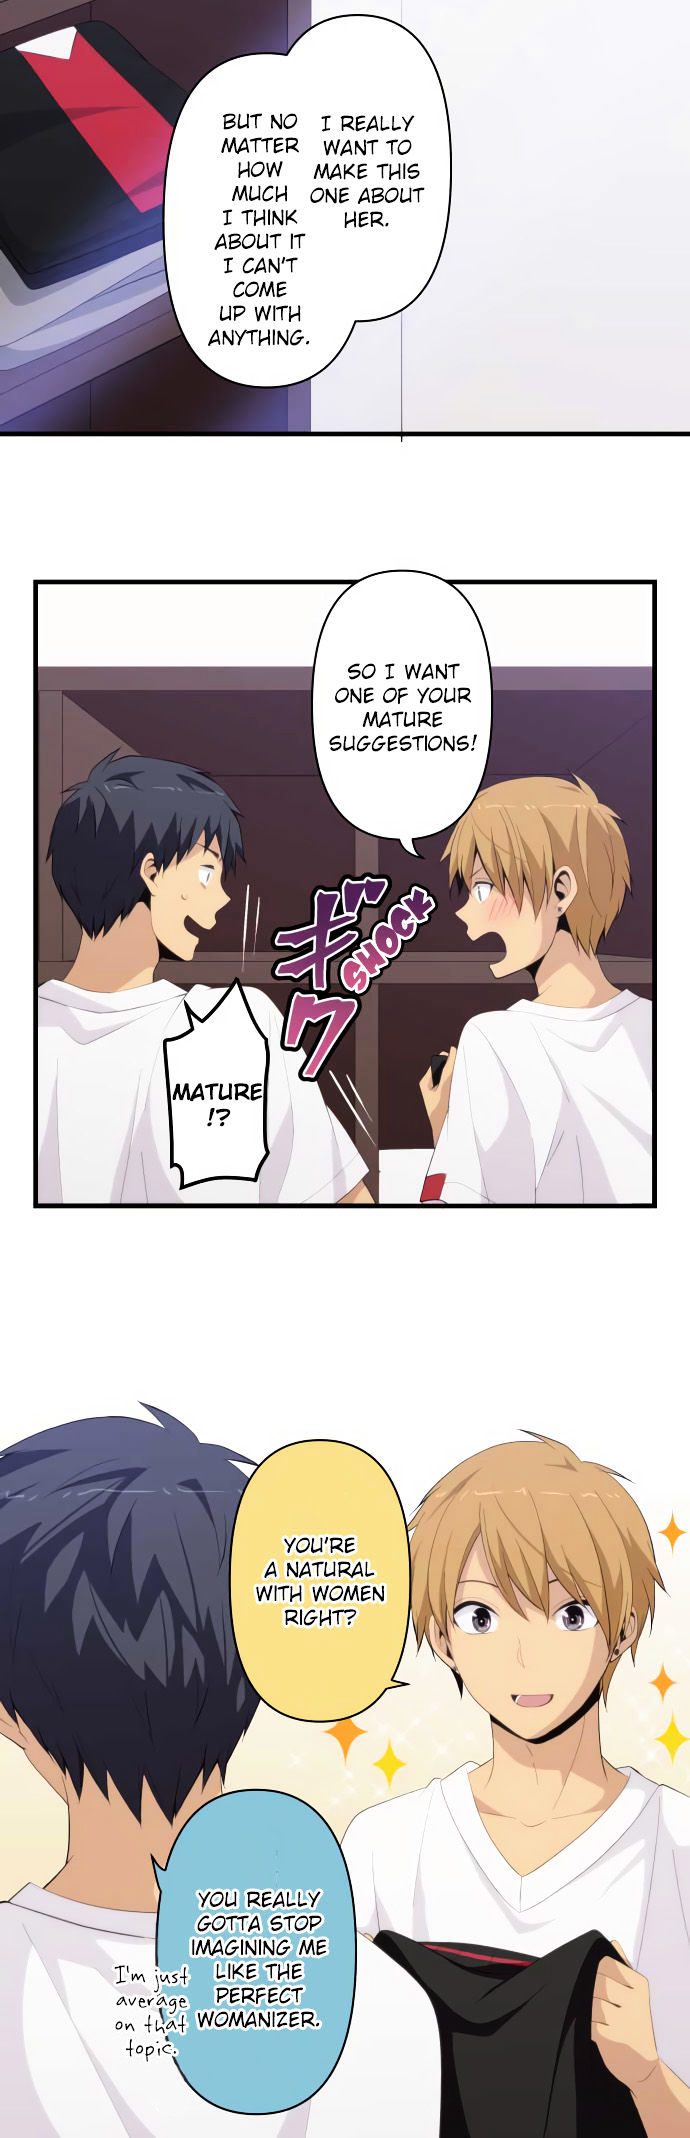 ReLIFE Chapter 189 Online Free Manga Read Image 6